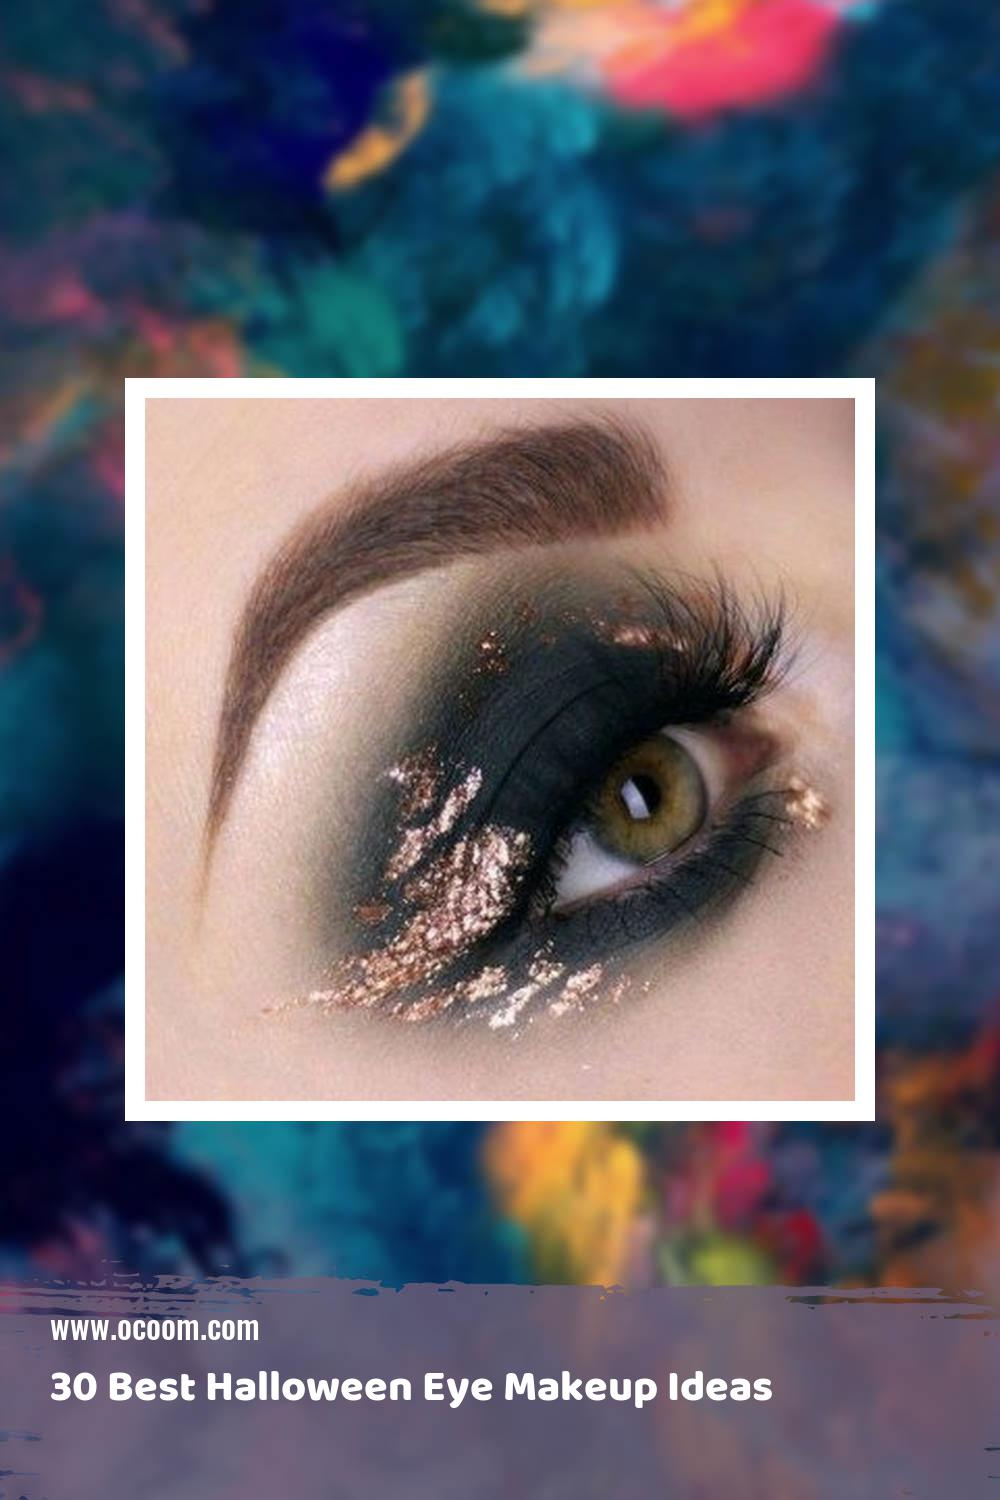 30 Best Halloween Eye Makeup Ideas 36